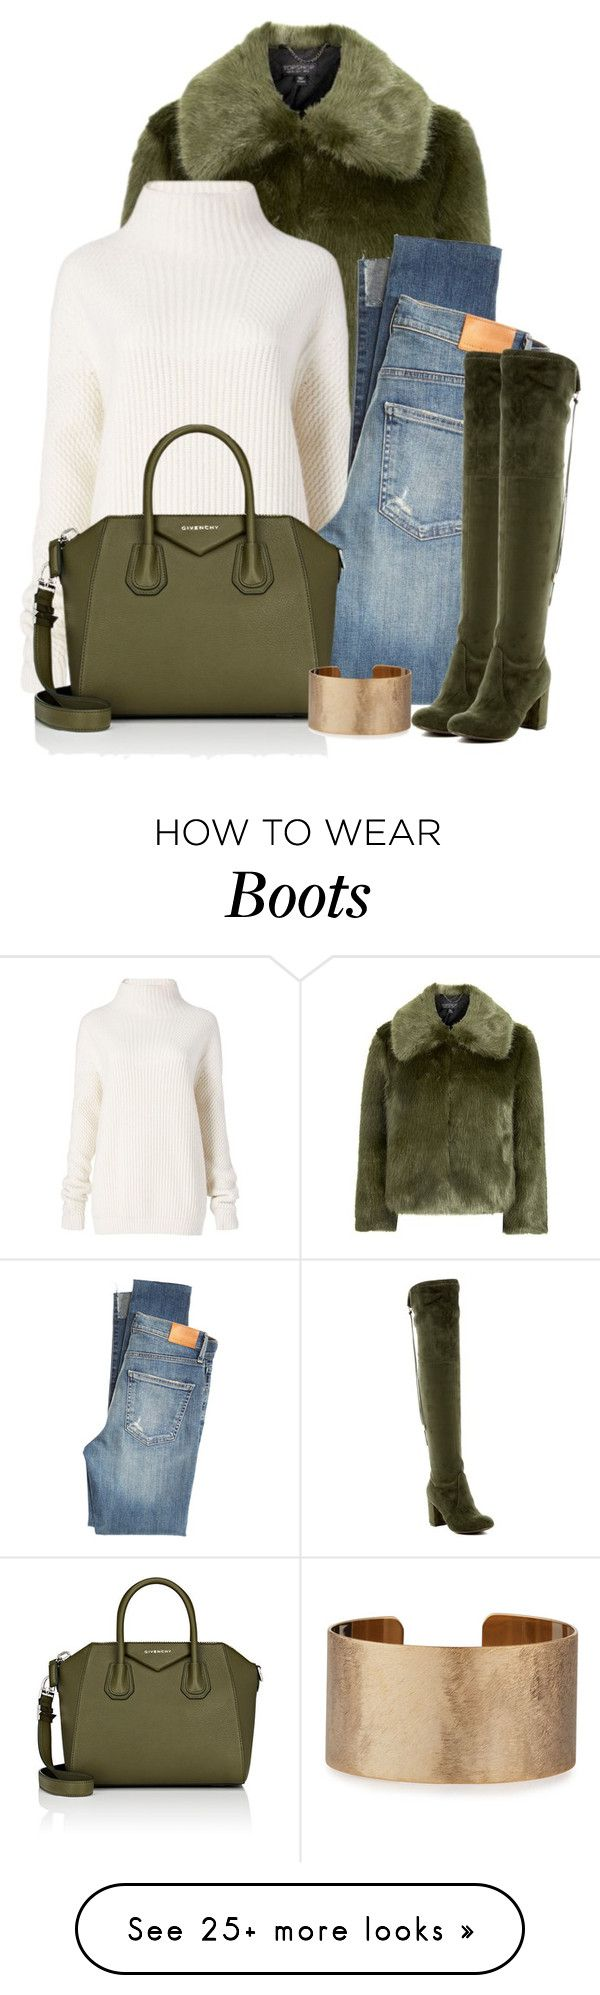 """""""Untitled #6305"""" by cassandra-cafone-wright on Polyvore featuring Topshop, Diane Von Furstenberg, Citizens of Humanity, Givenchy, Nature Breeze and Panacea"""